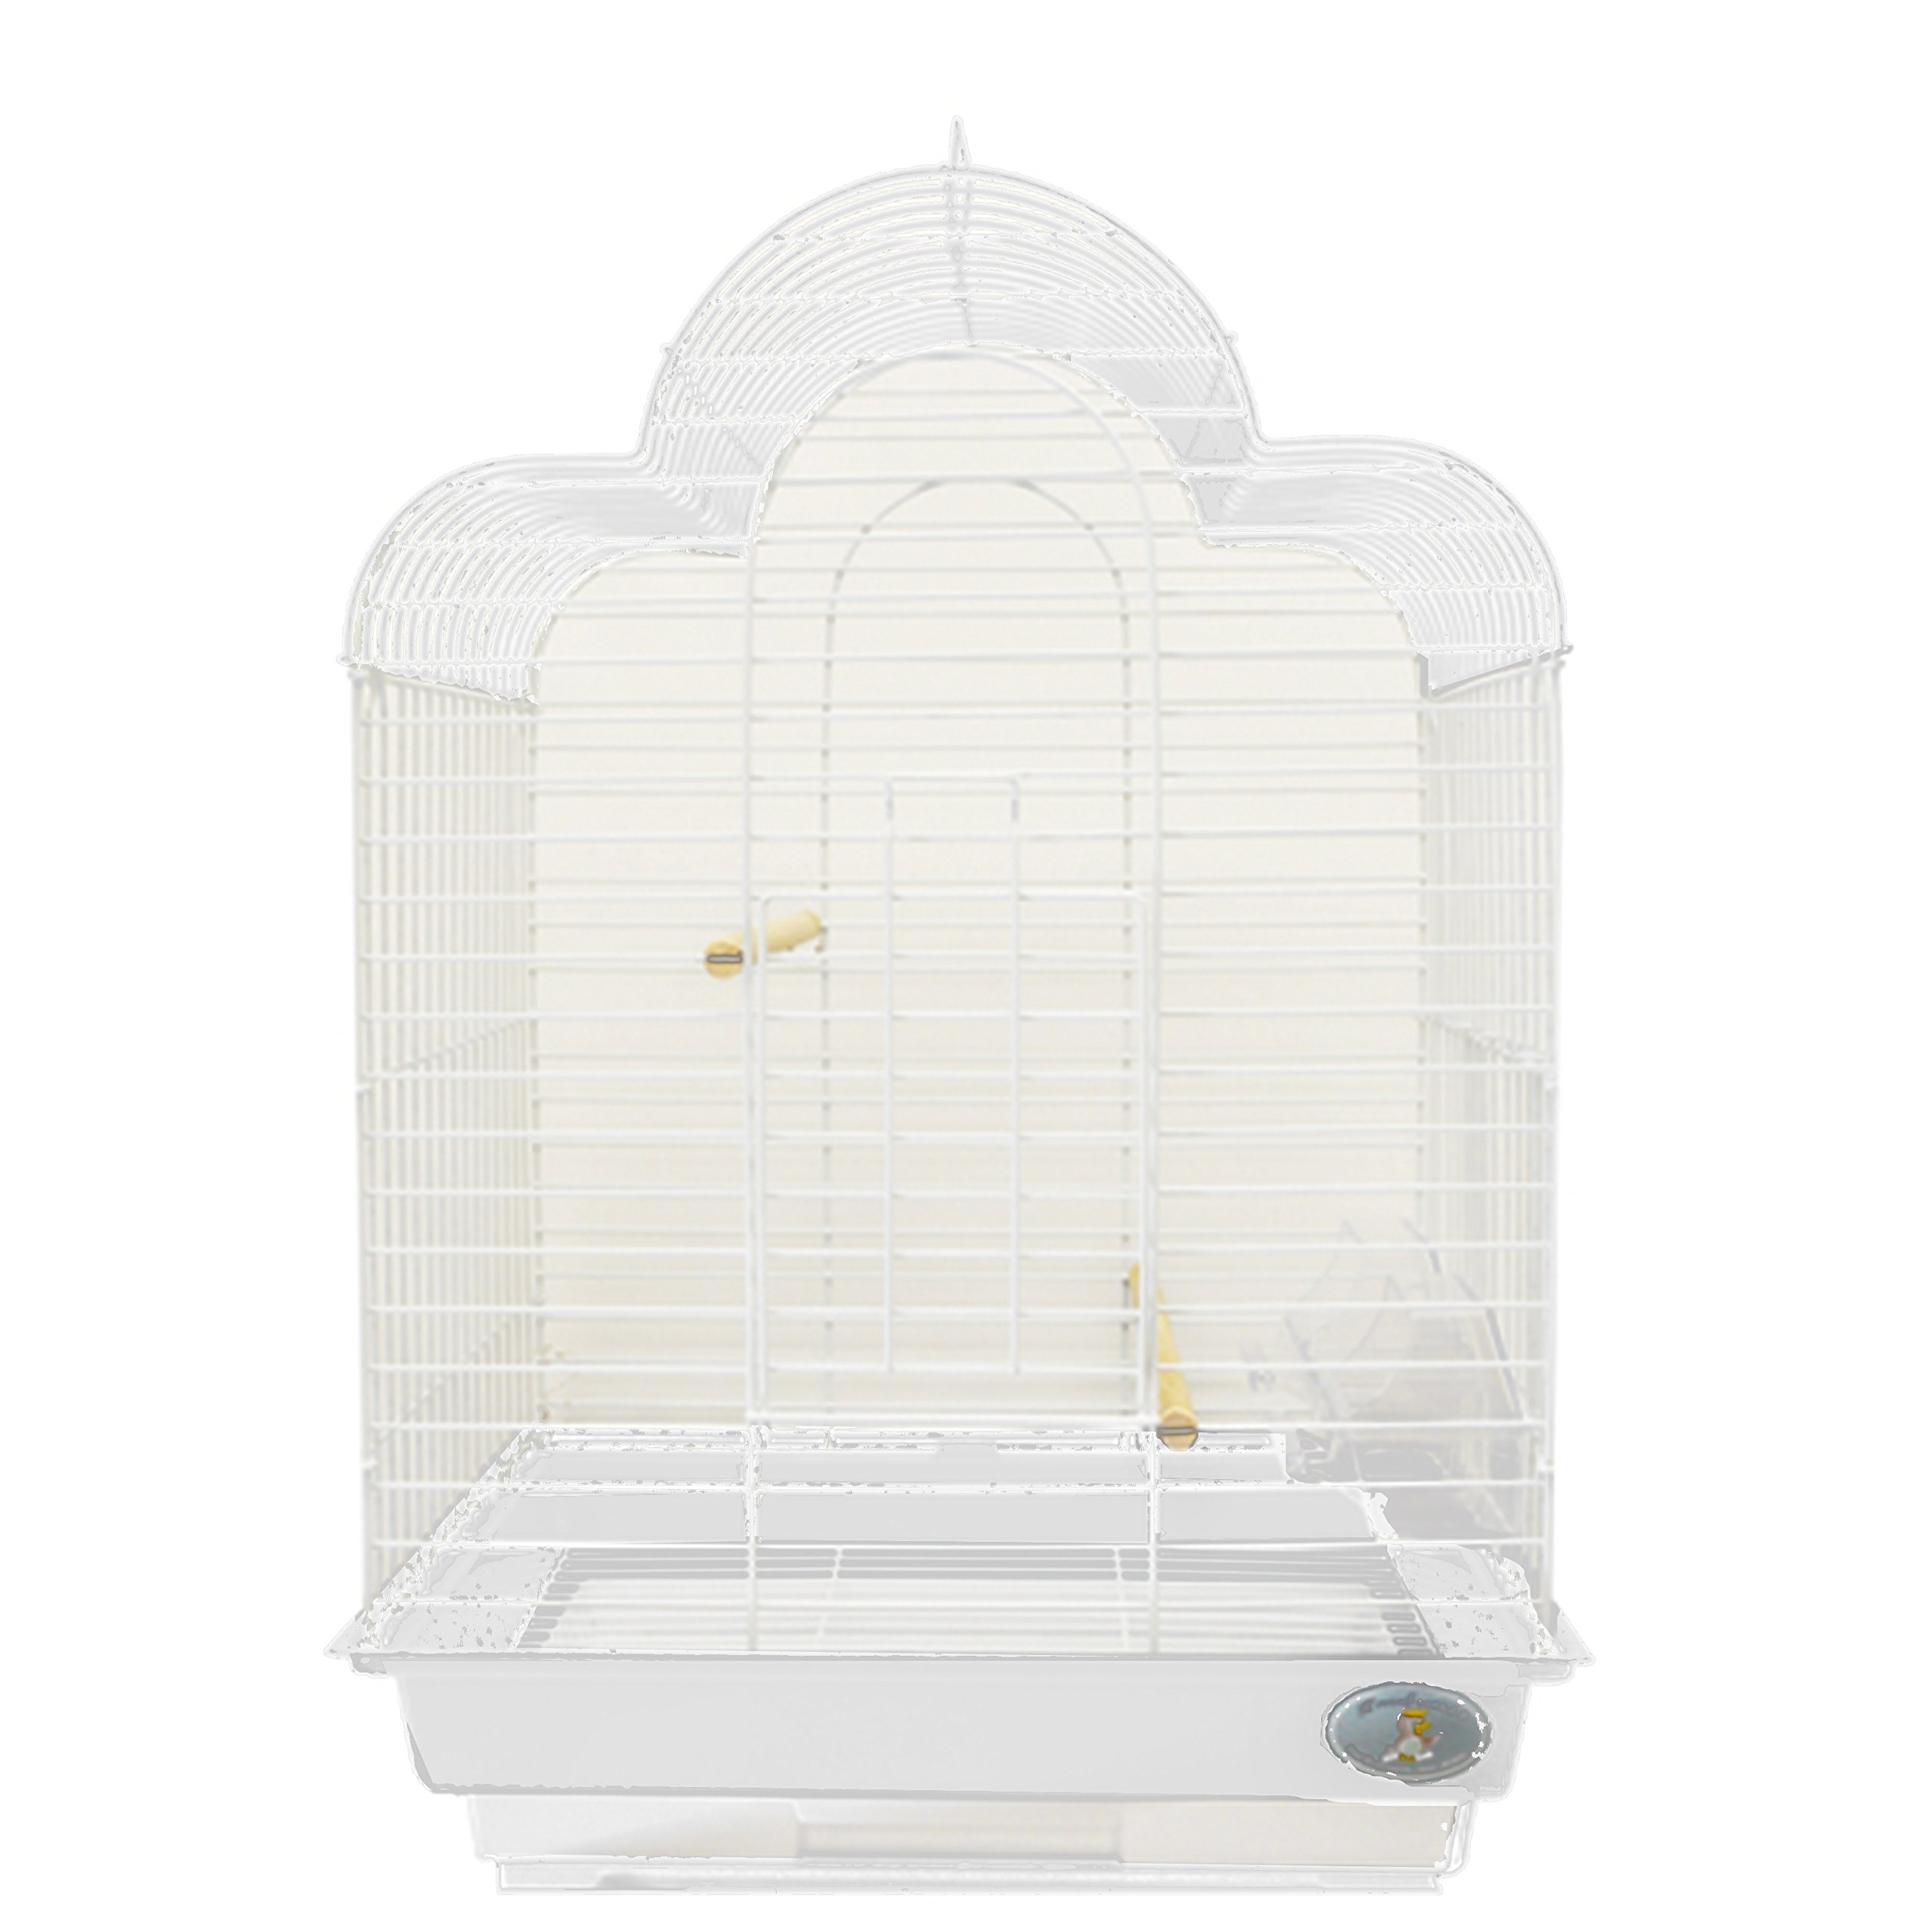 Kings Cages ES 1814_T bird cage toy toys Cockatiels Finches Parakeets Lovebirds (WHITE)